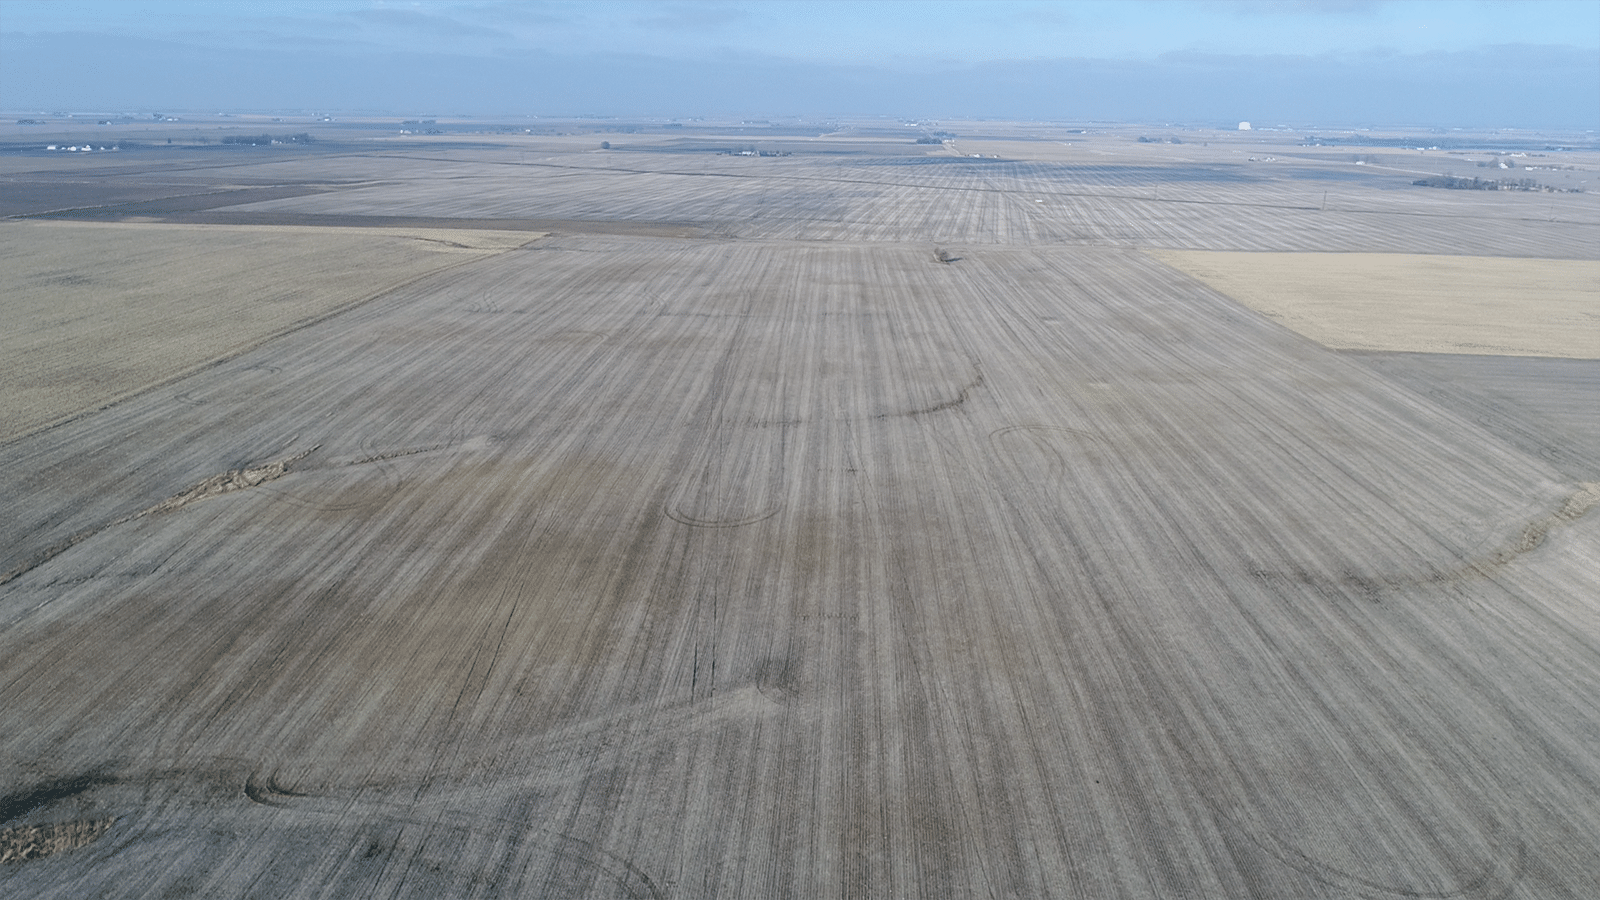 Champaign Co Auction 208 Ac - Feb 18 2020 - Tract 2